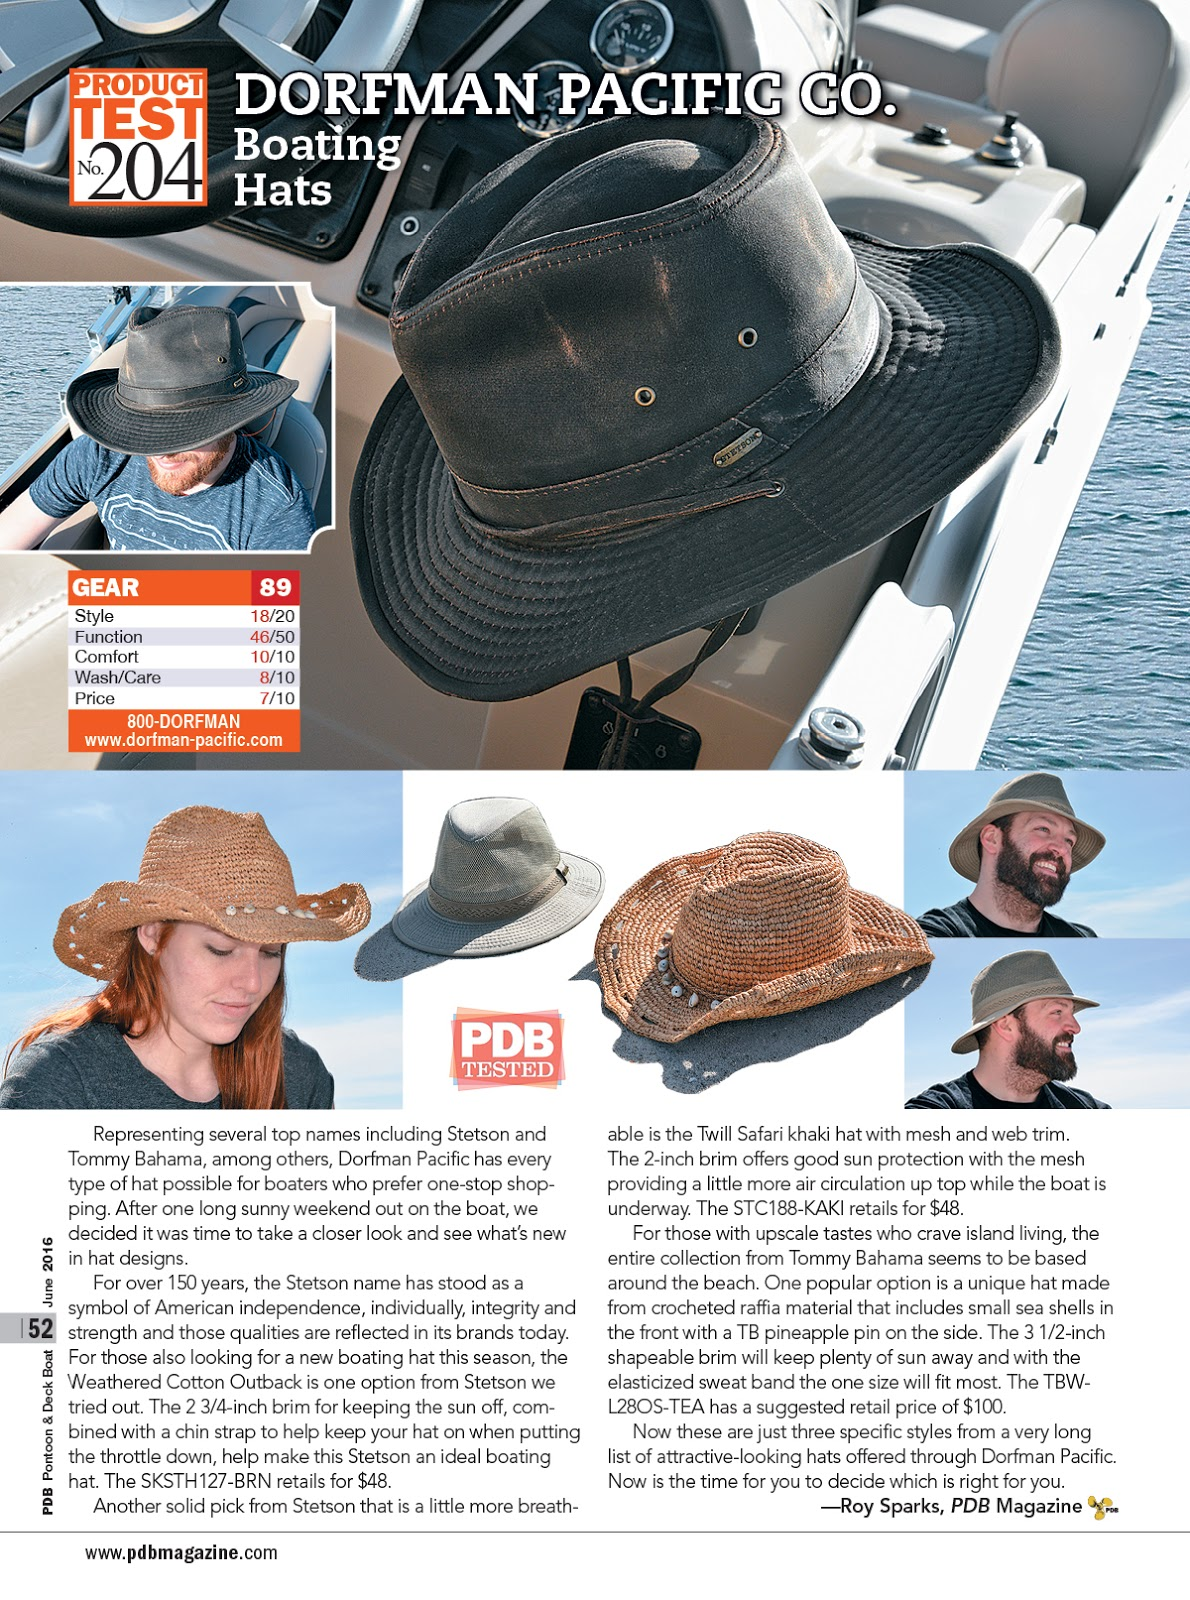 kenny chesney blue chair bay hats steel folding dorfman pacific in the news: featured pantoon & deck boat magazine